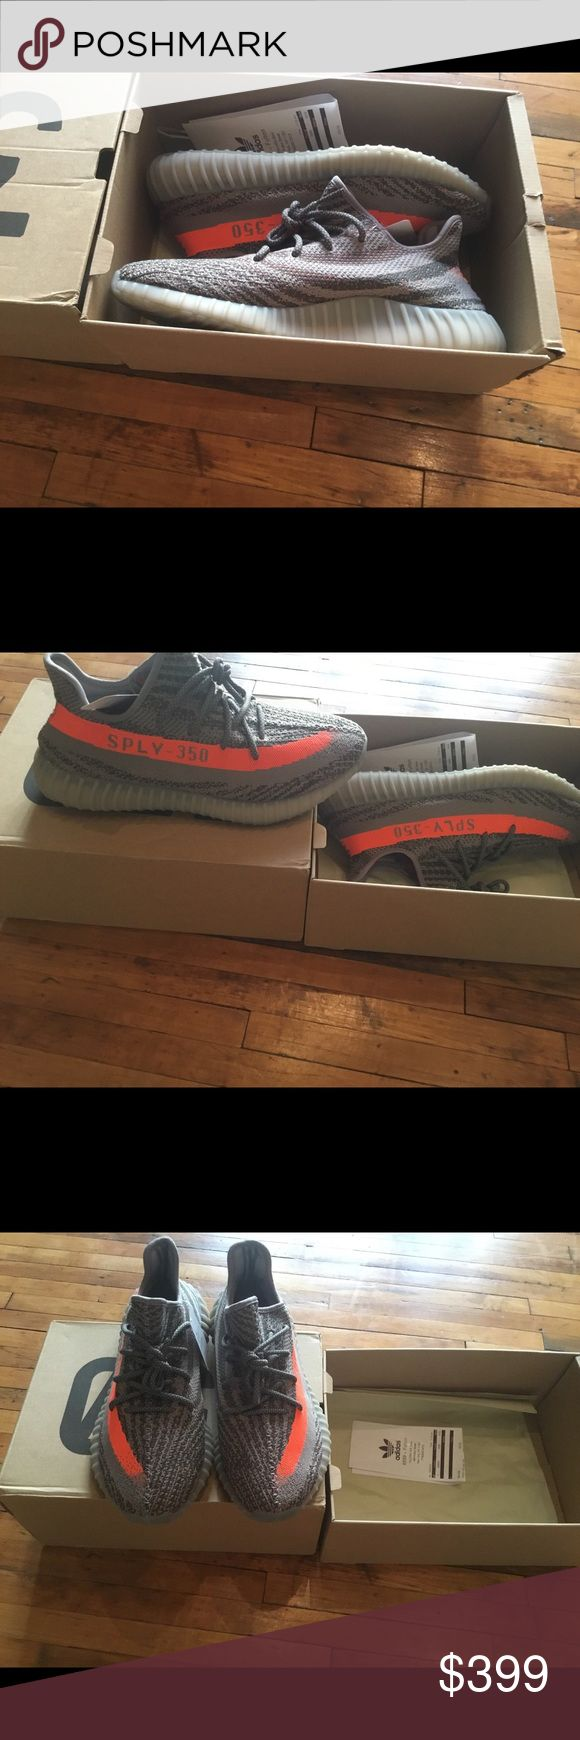 Adidas X Kanye West Yeezy Boost 350 V2 - BB1826 Adidas X Kanye West Yeezy Boost 350 V2 Beluga - BB1826 100% Authentic Brand New In a Box Never Worn adidas Shoes Athletic Shoes